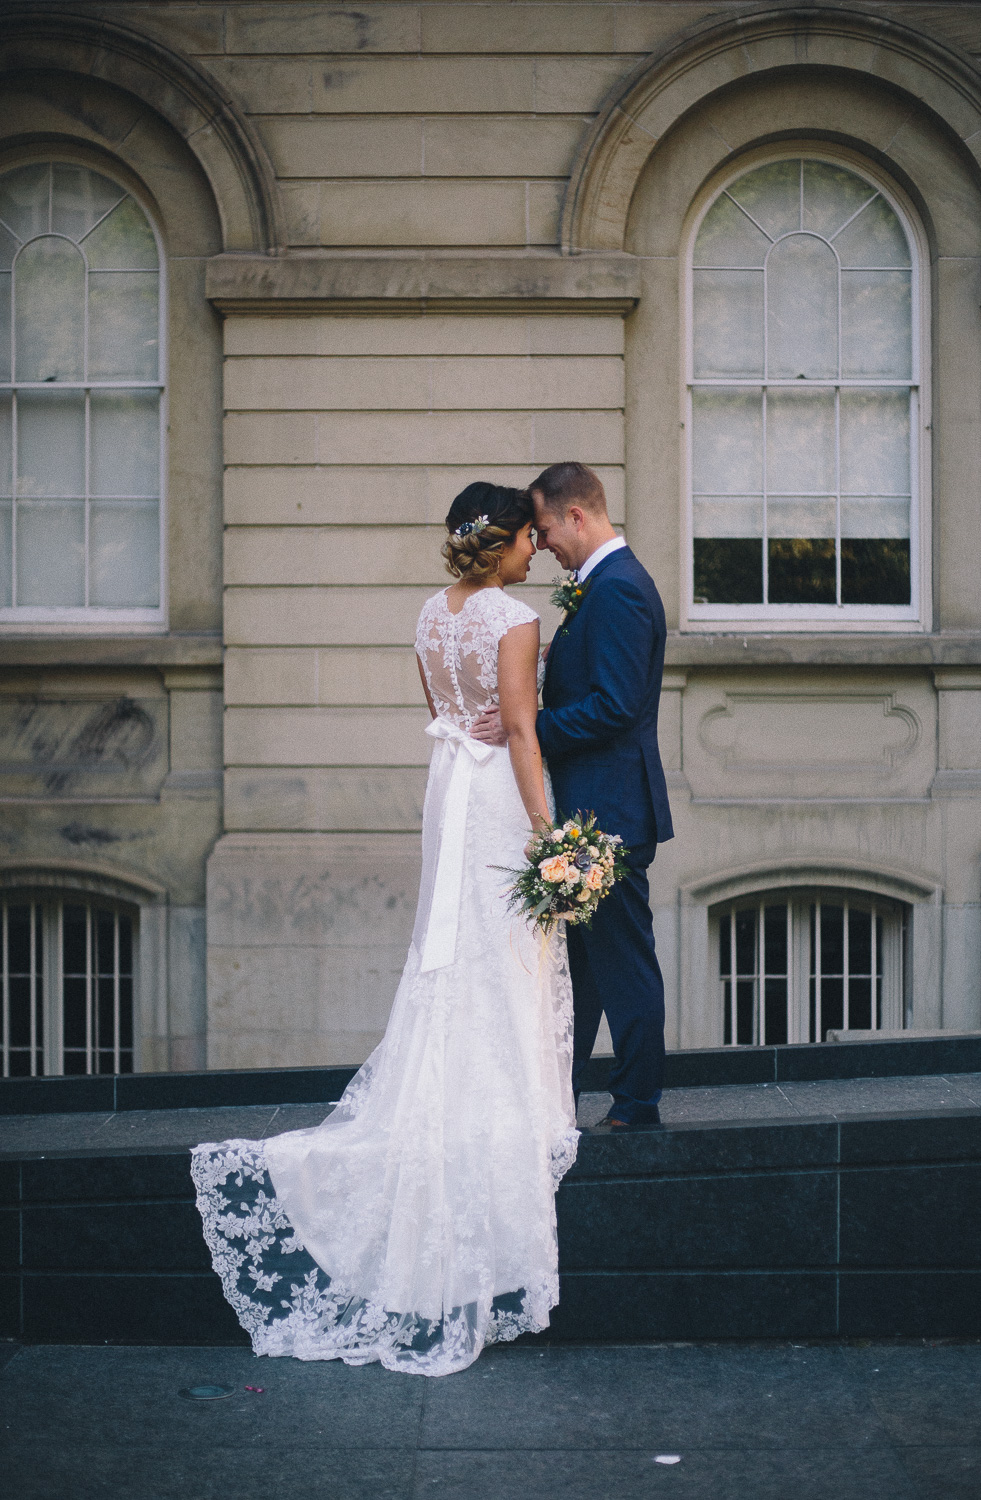 Groom wearing navy wedding suit holds his Asian bride around the waist as she shows the back of her lace wedding down with low back and bow detail at Osgoode Hall